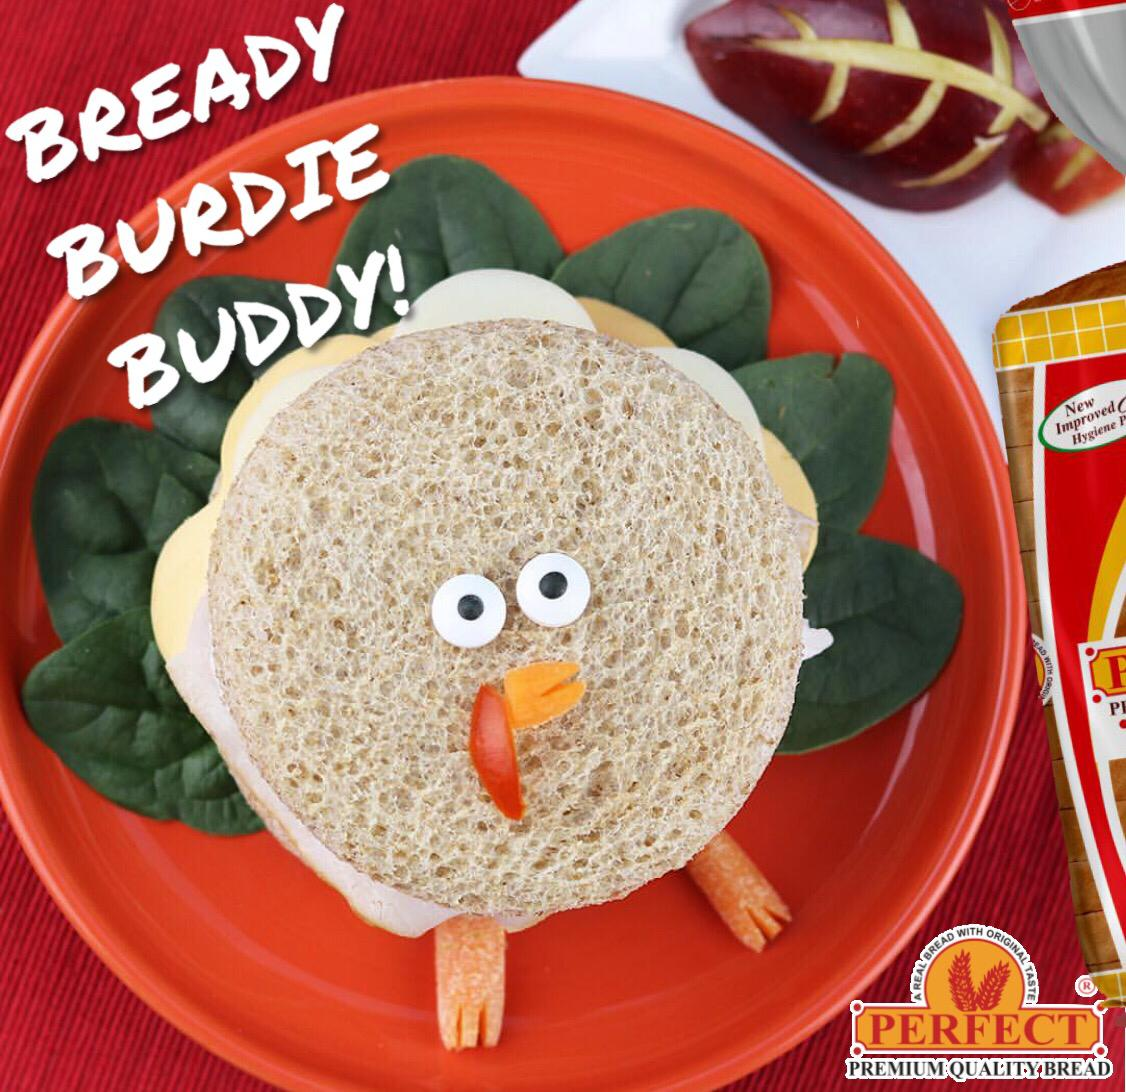 Gobble up the goodness with your bread buddy and #perfectbread! 🍞🥪 #breads #goodness #kids #fun #breakfastideas #funbreads #morning #evening #snacks #happykids